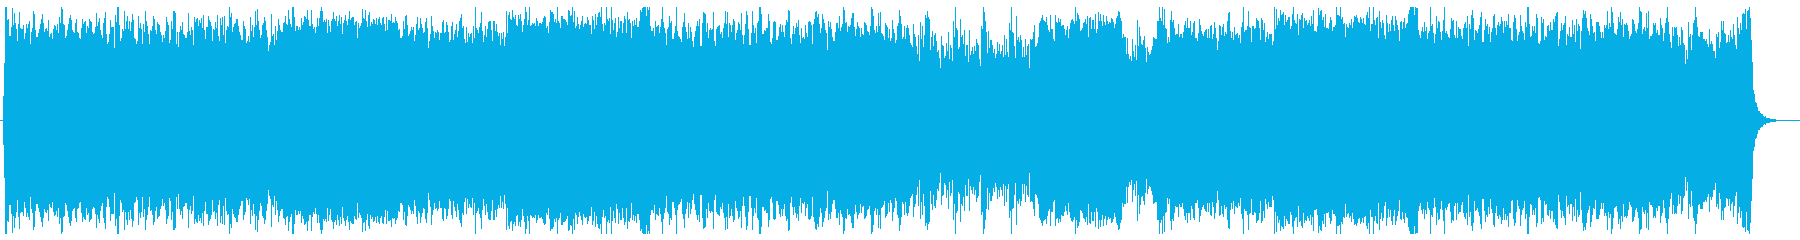 Hollywood-style orchestra directing a battle's reproduced waveform